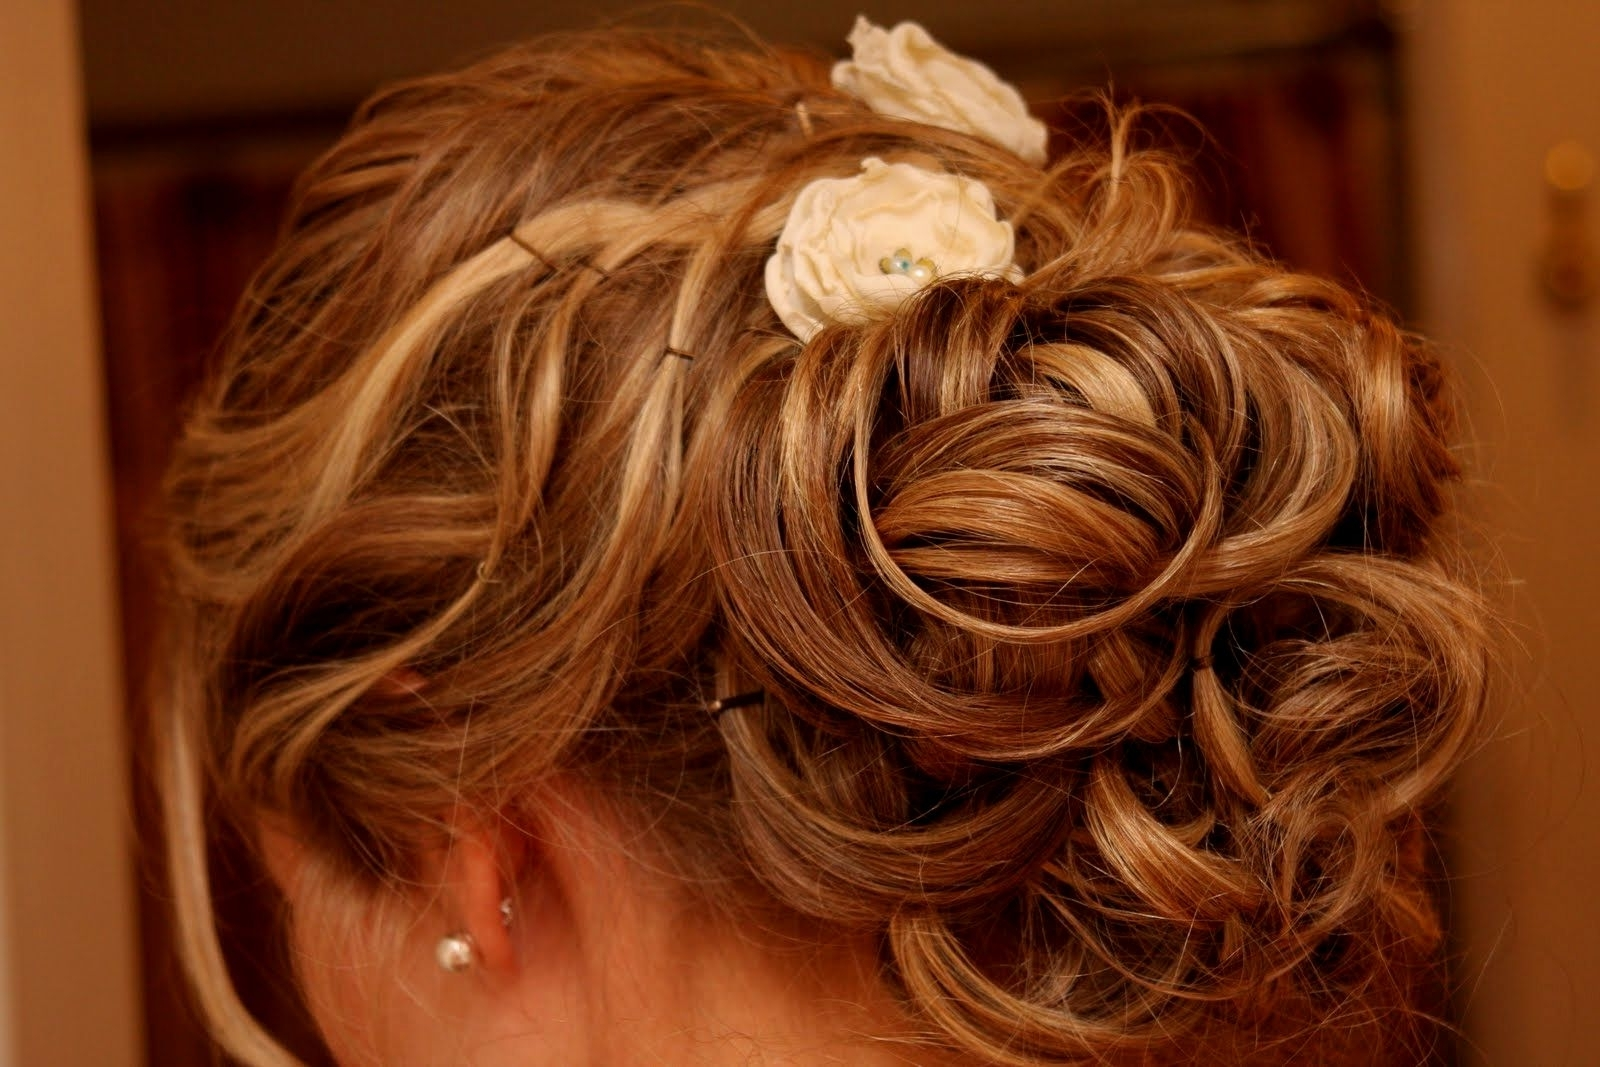 Bridal Hairstyles Thin Hair | Hairstyles Ideas Throughout Messy Updo Hairstyles For Thin Hair (View 6 of 15)